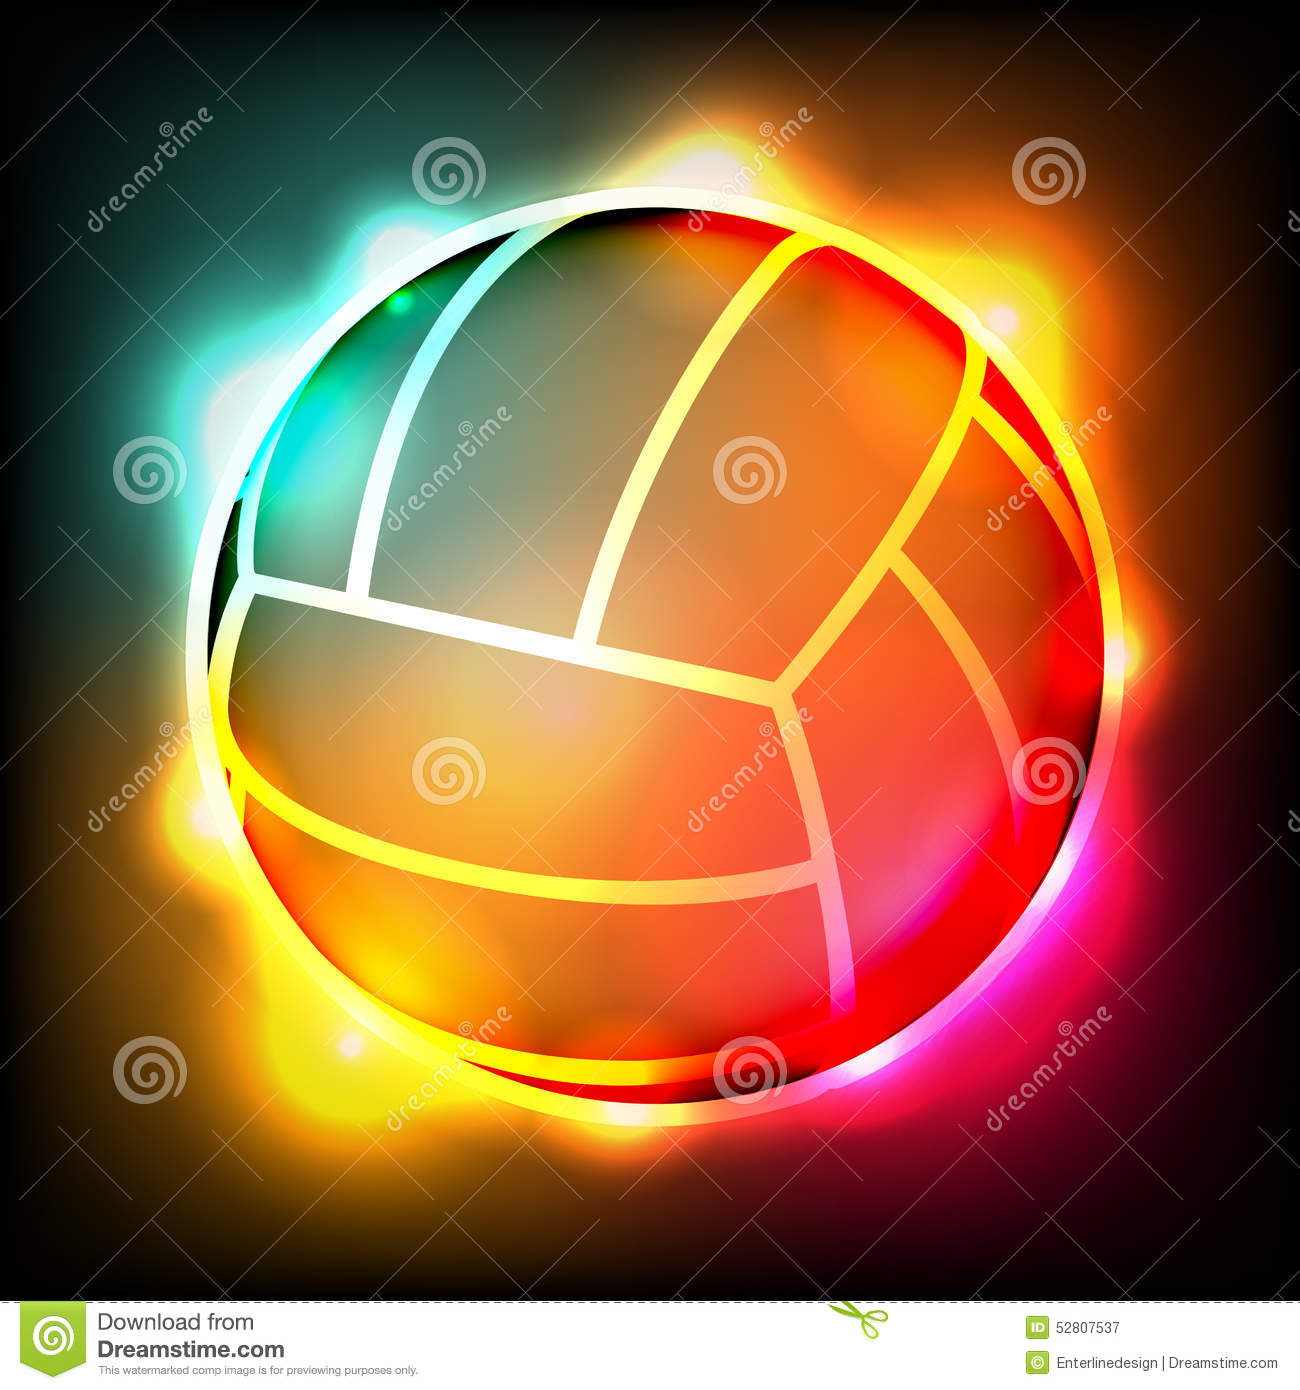 Free Colorful Volleyball Graphics - Volleyball Court Central